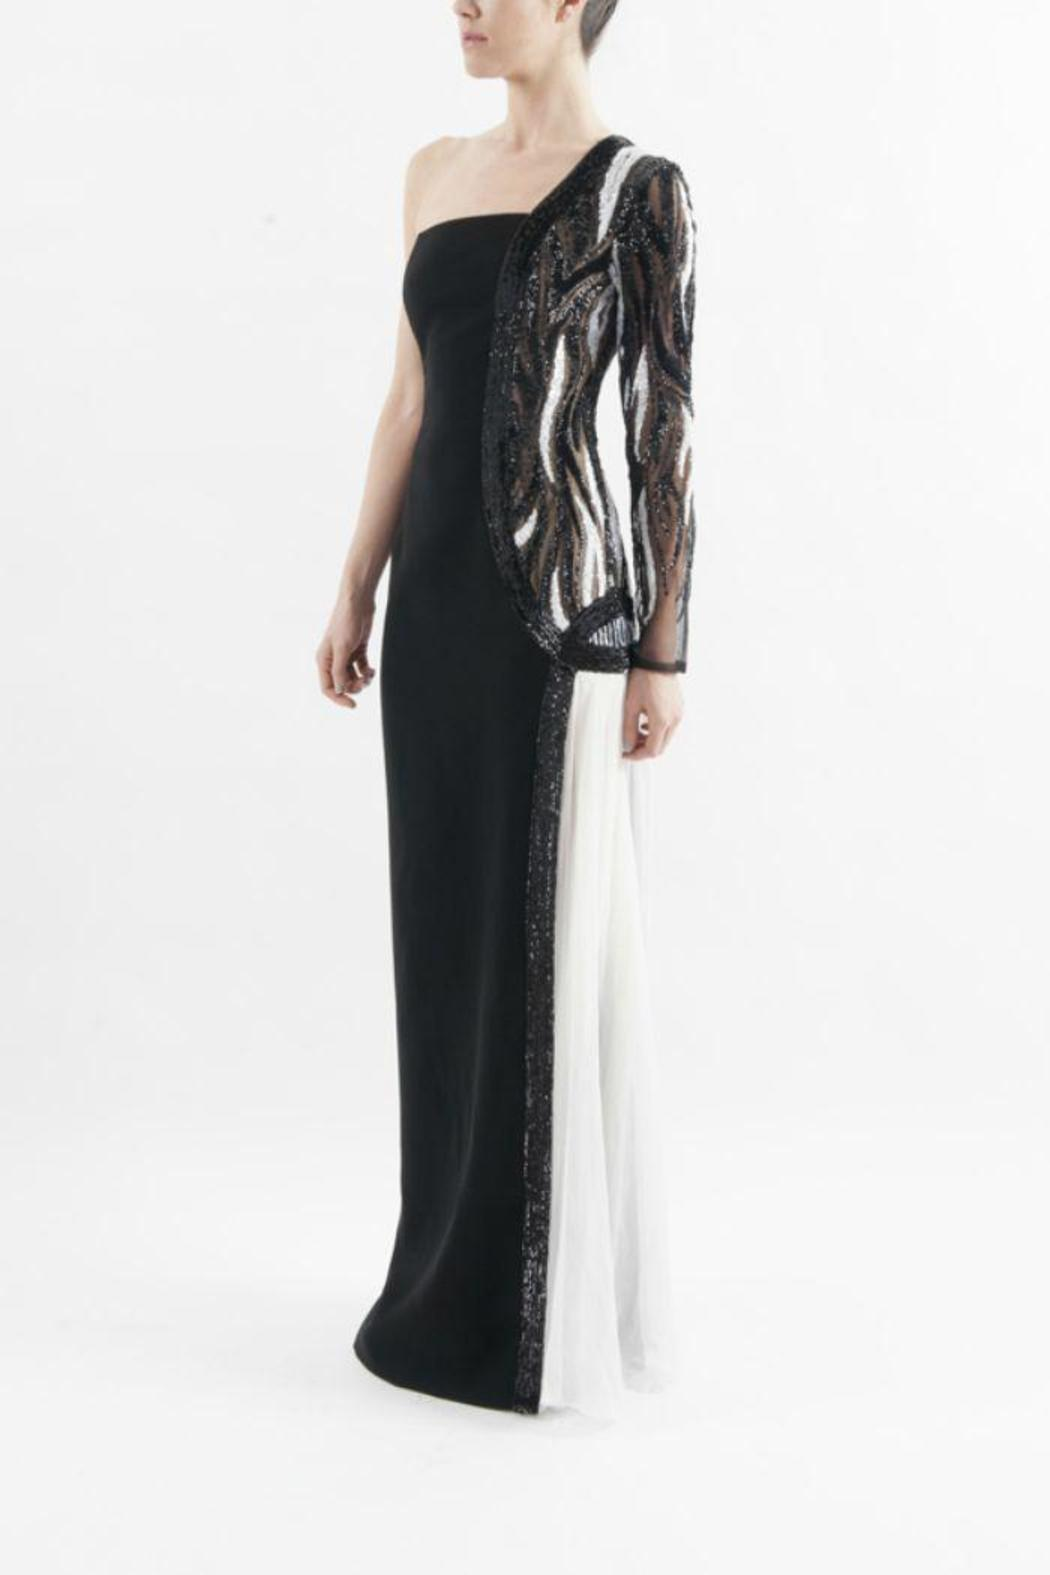 George chakra george chakra gown from new york by runway for Georges chakra gold wedding dress price